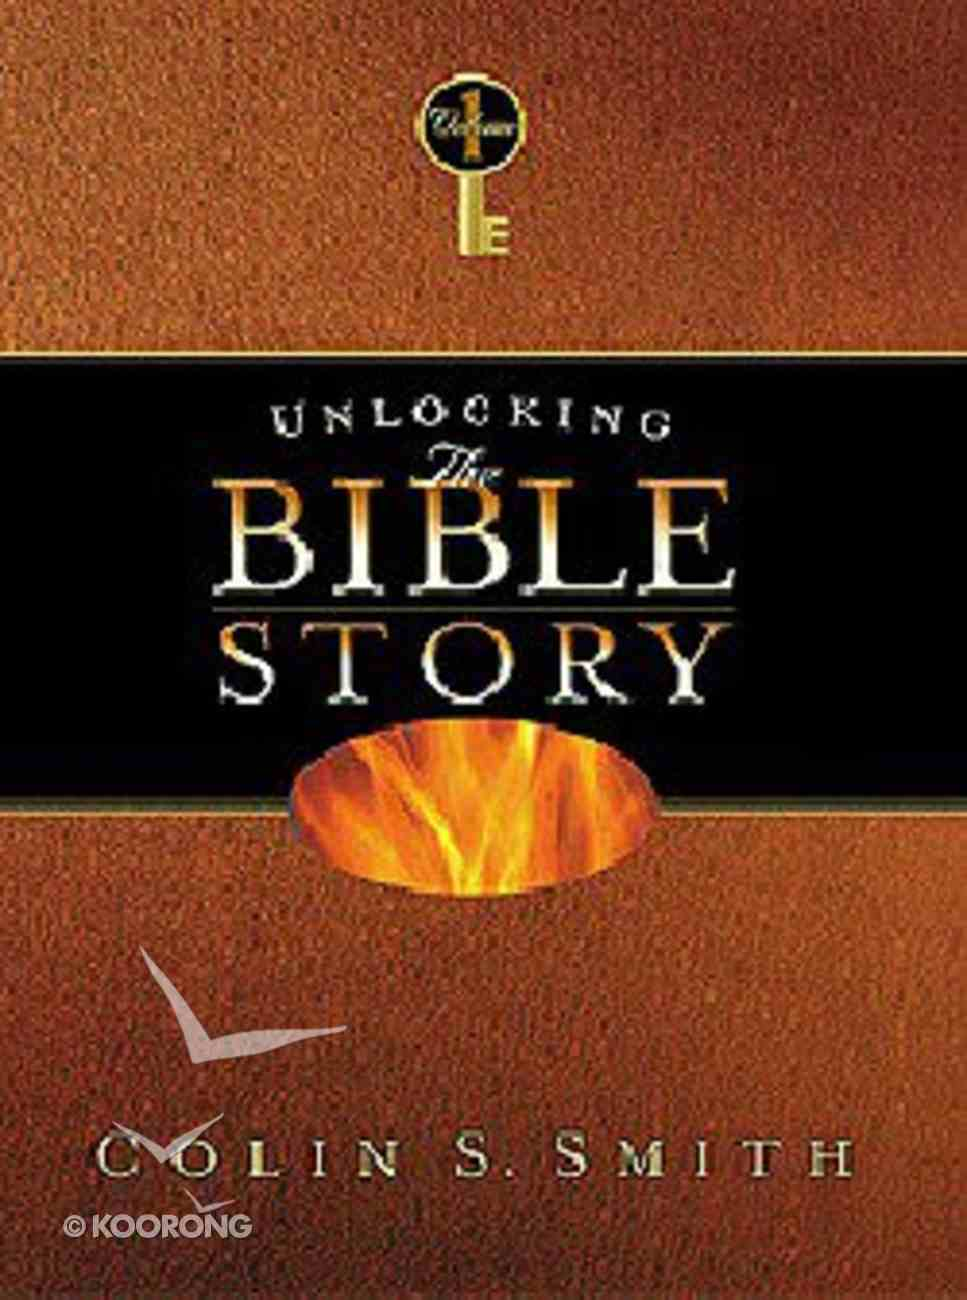 Unlocking the Bible Story (Volume 1) (Unlocking The Bible Story Series) Hardback